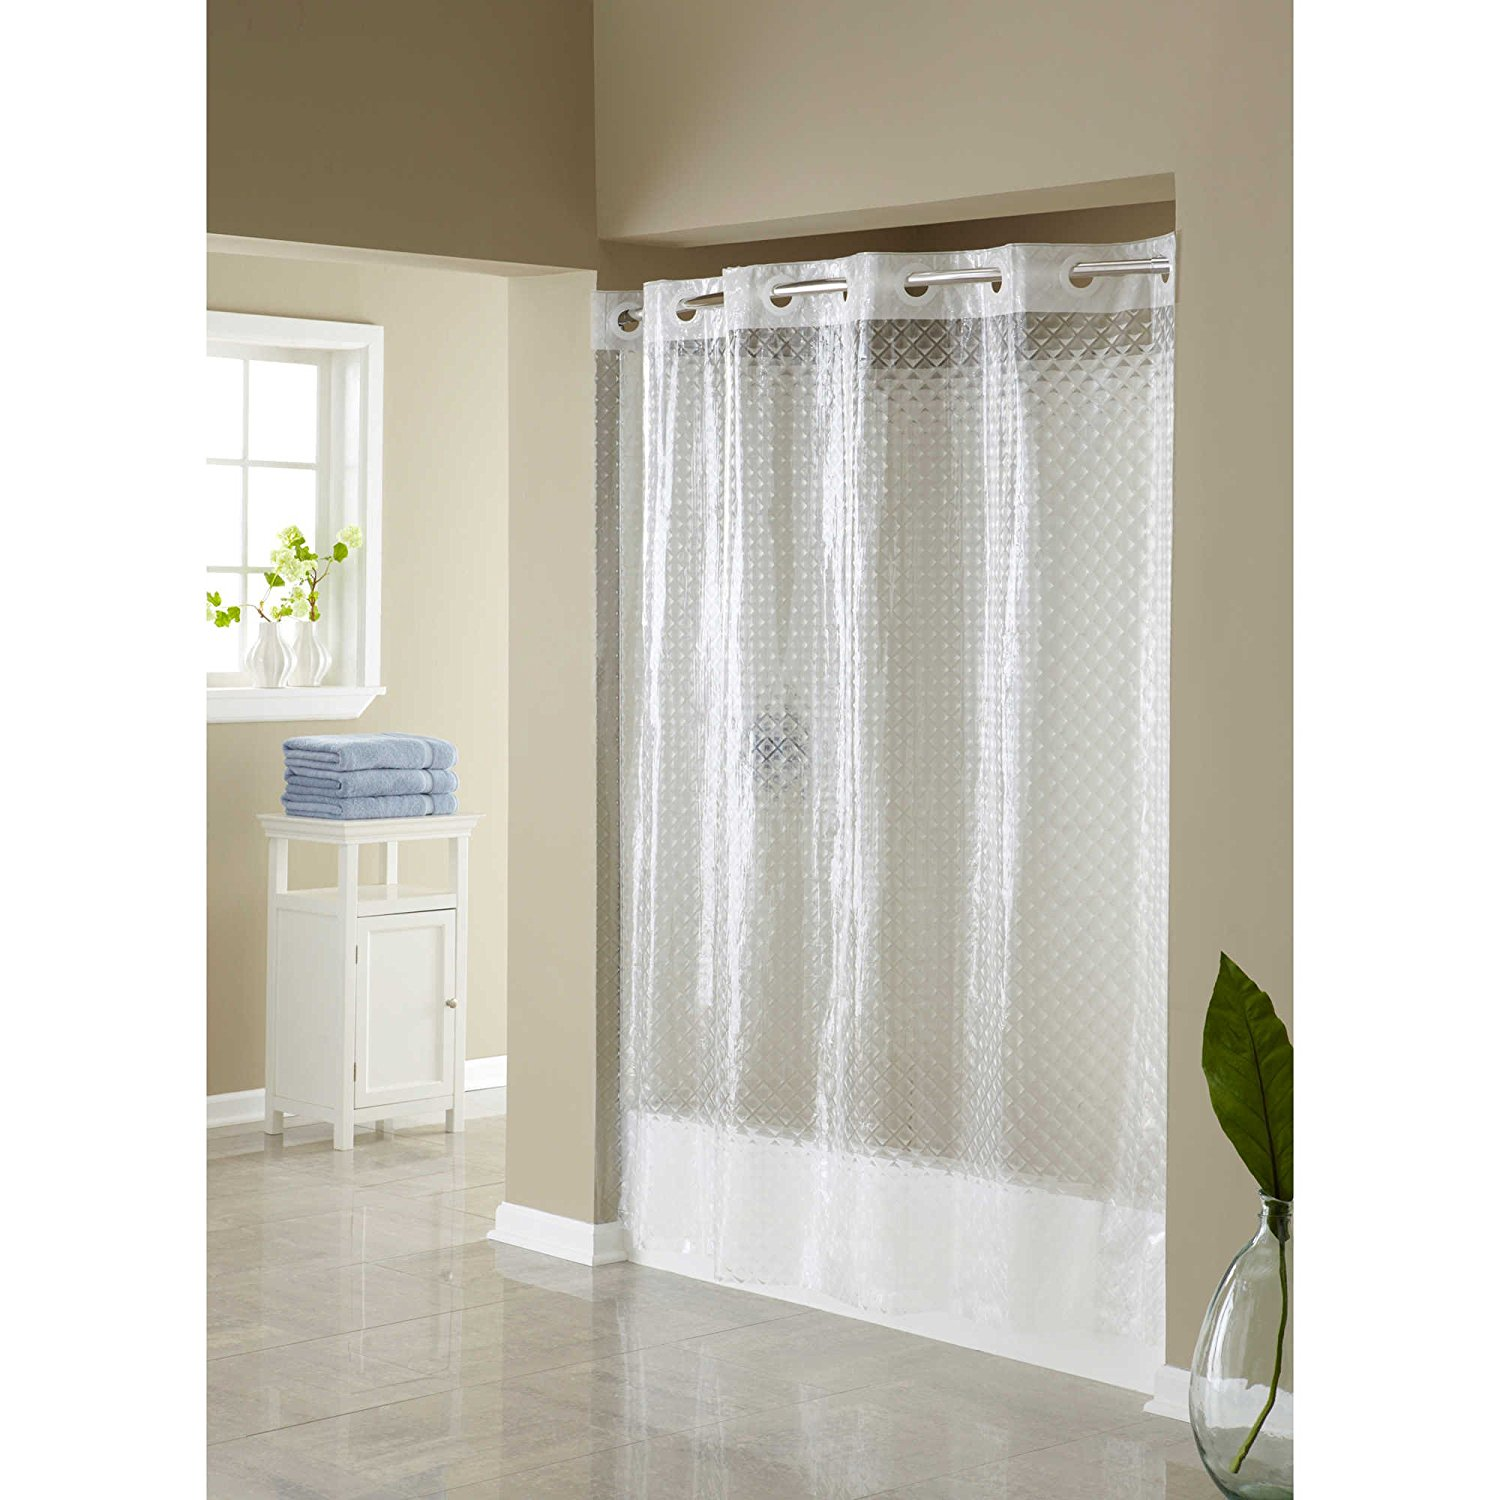 Hangs in Seconds EVA Shower Curtain (Clear Diamond), It allows you to hang the curtain in less than 10 seconds By Hookless